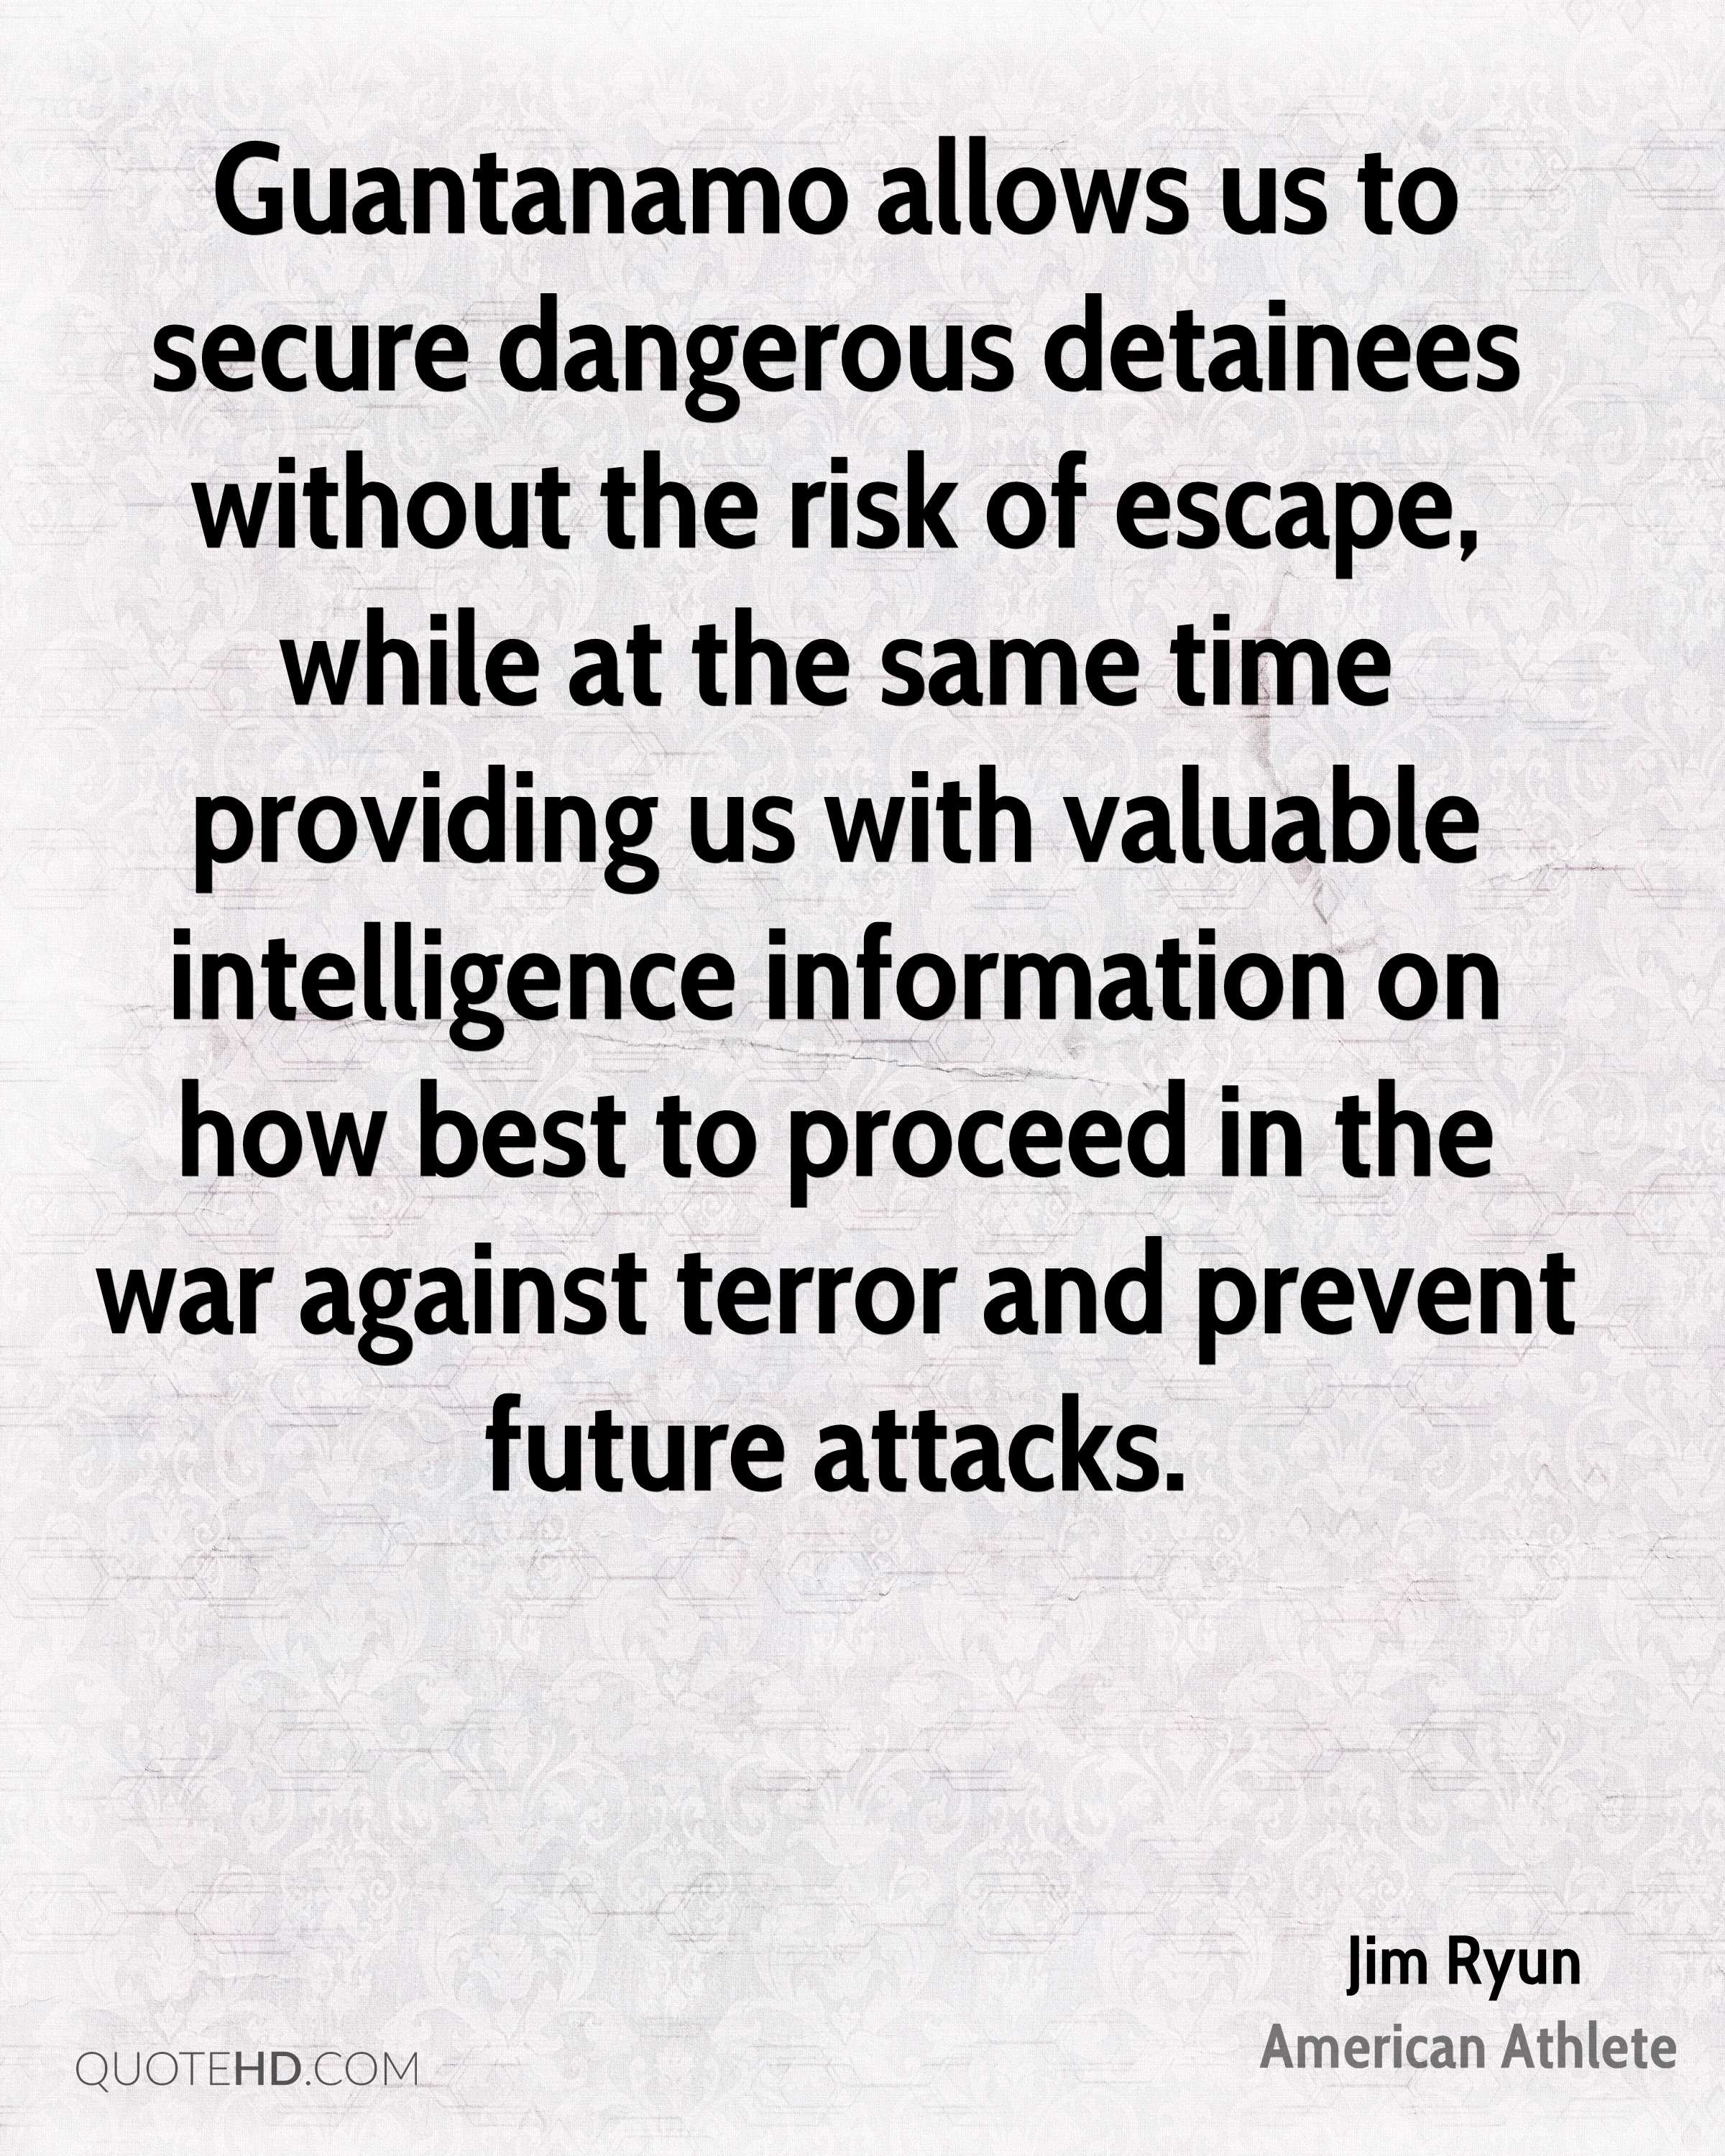 Guantanamo allows us to secure dangerous detainees without the risk of escape, while at the same time providing us with valuable intelligence information on how best to proceed in the war against terror and prevent future attacks.